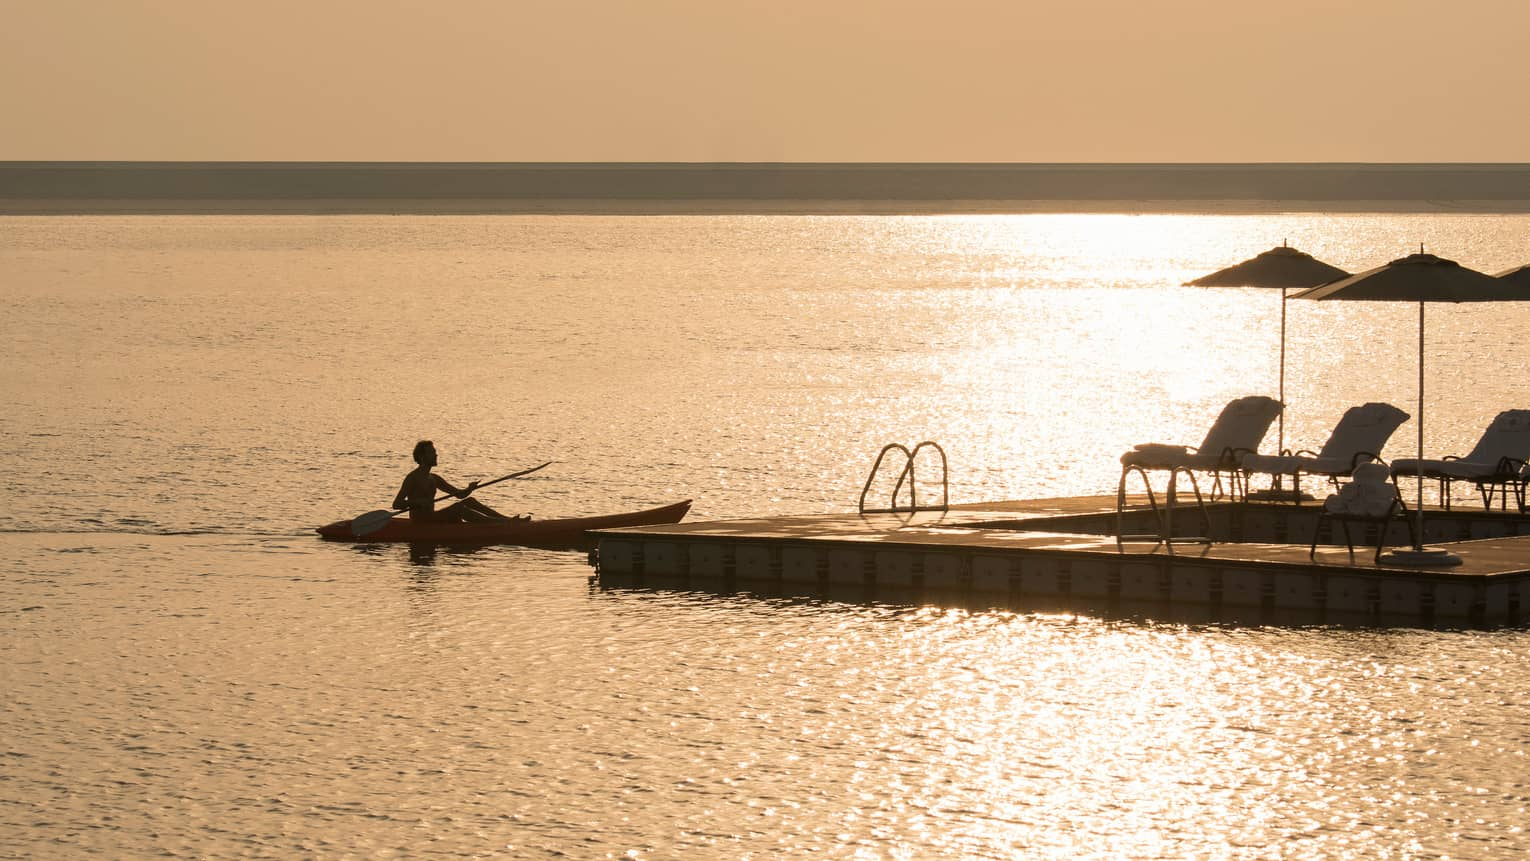 Silhouette of person in kayak with paddle on water in front of dock with patio chairs, umbrellas at sunset